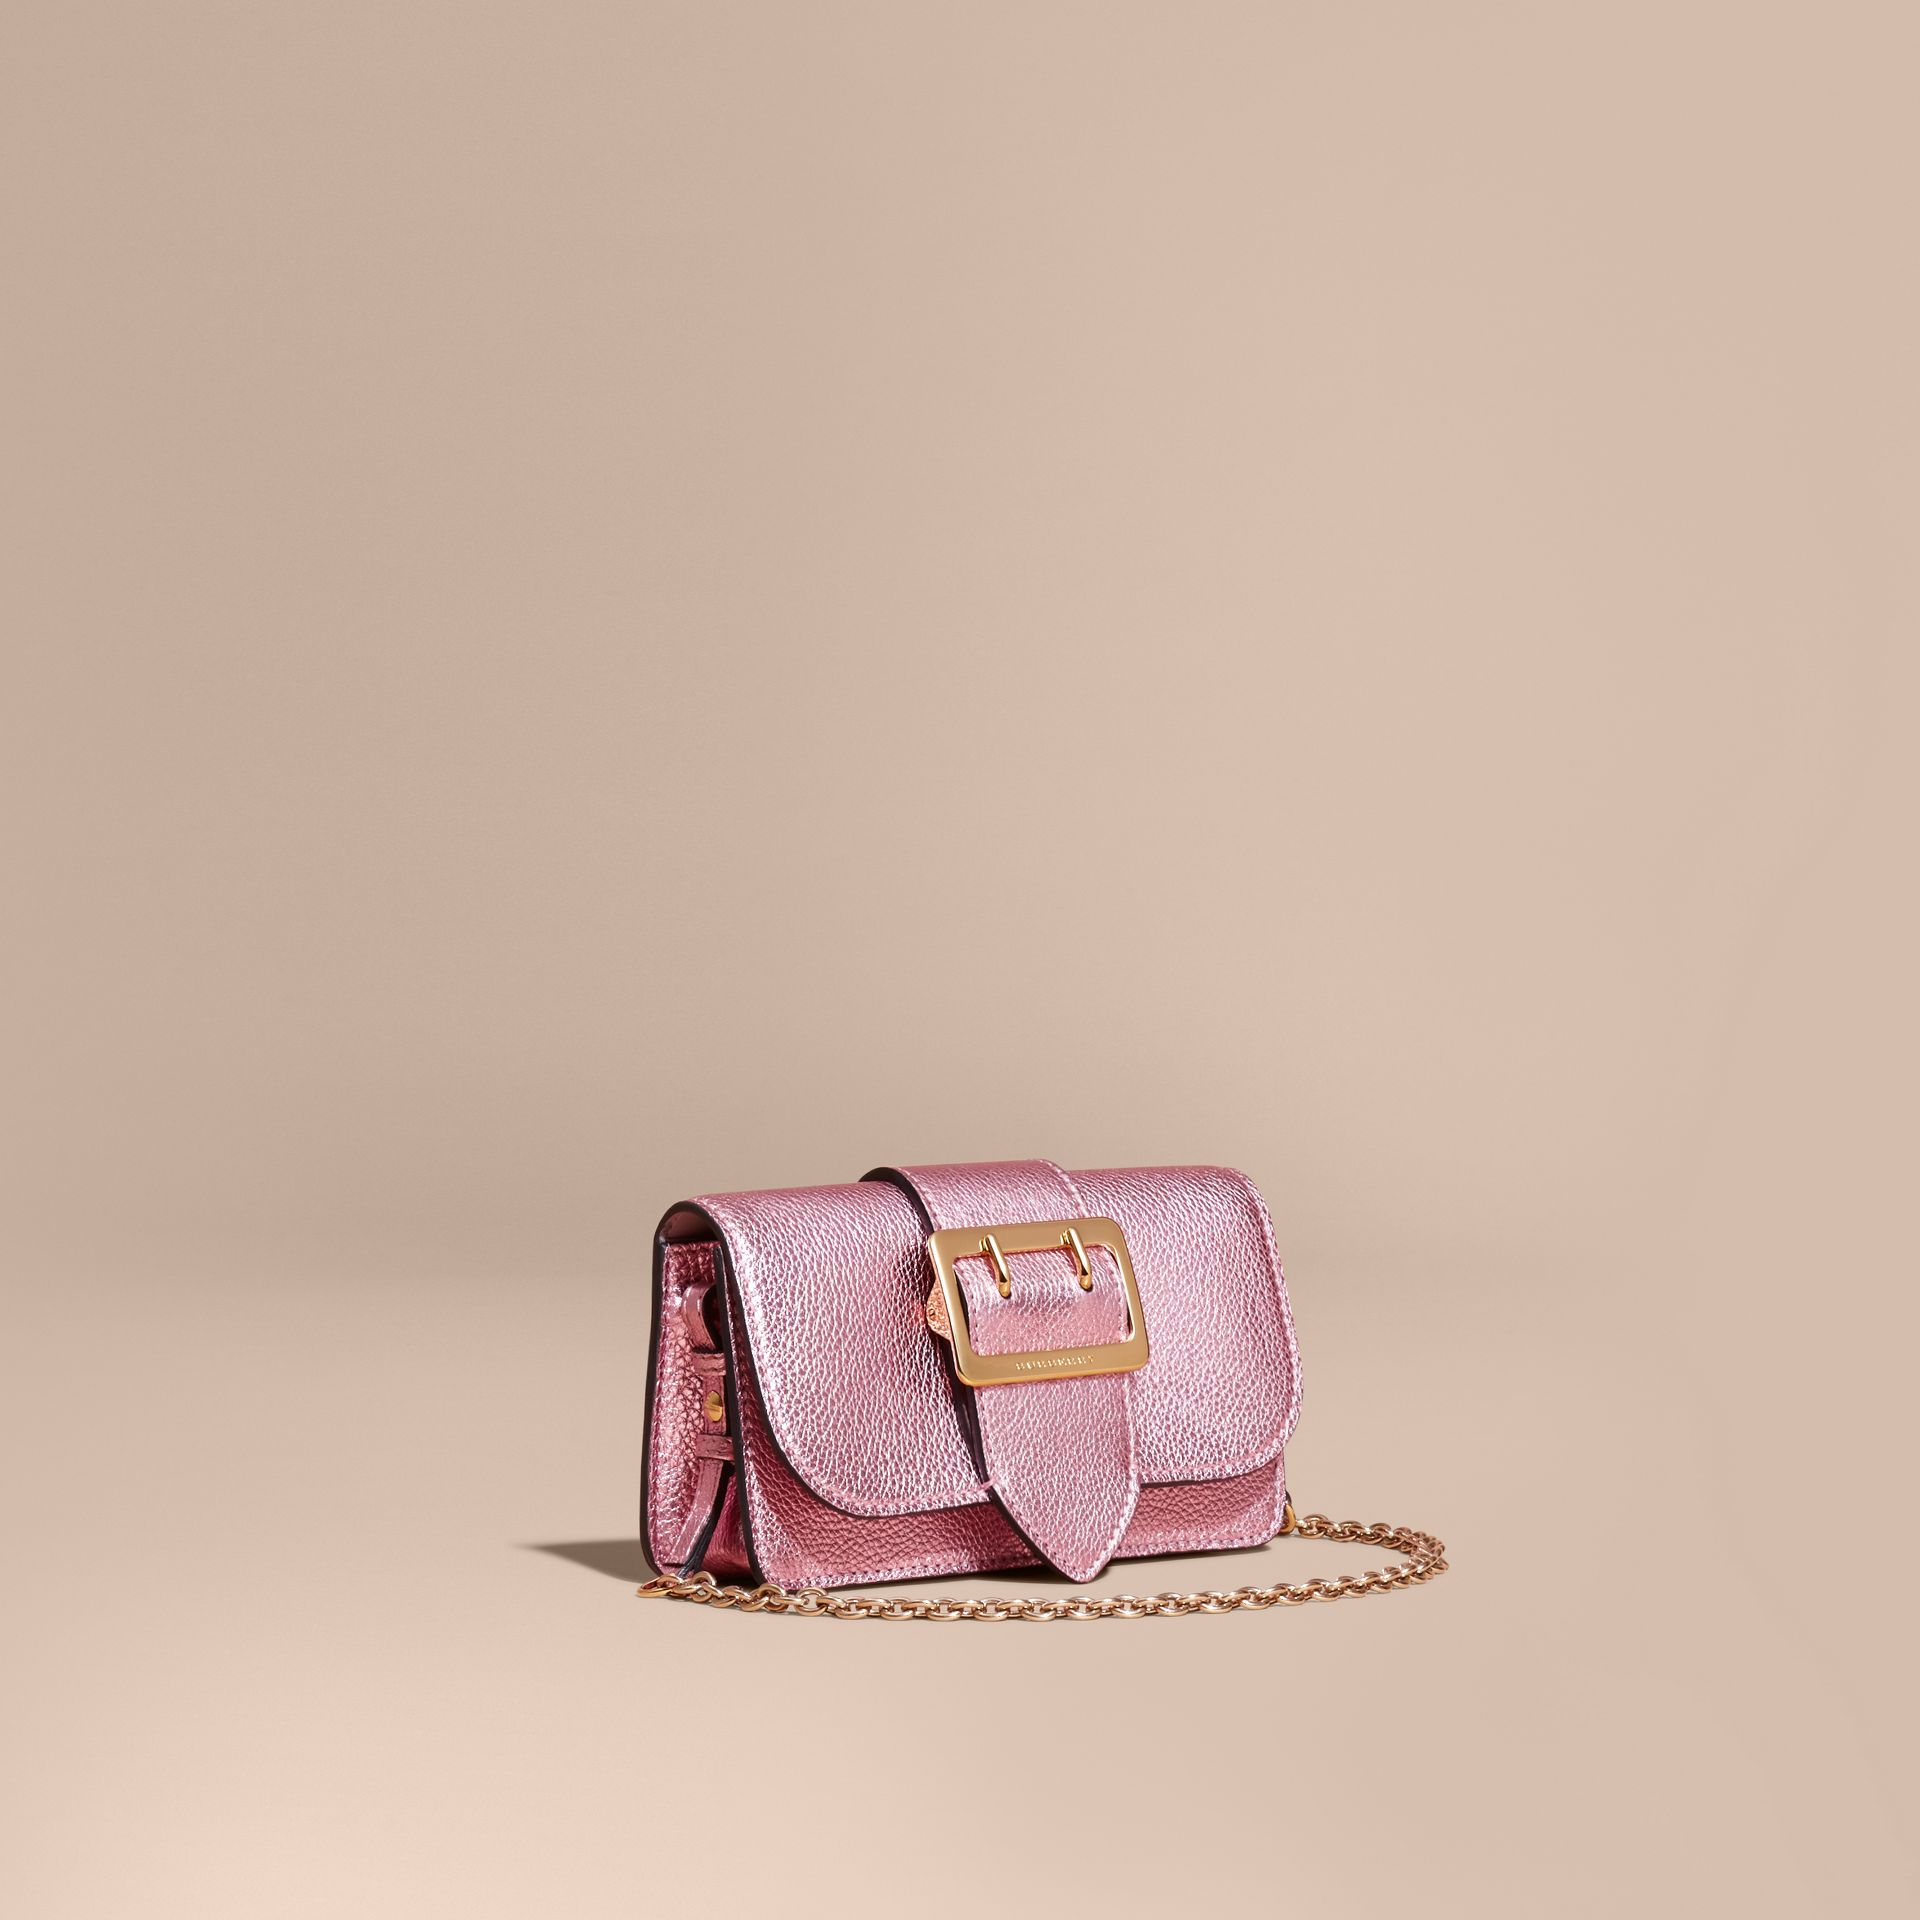 Pale orchid The Mini Buckle Bag in Metallic Grainy Leather Pale Orchid - gallery image 1